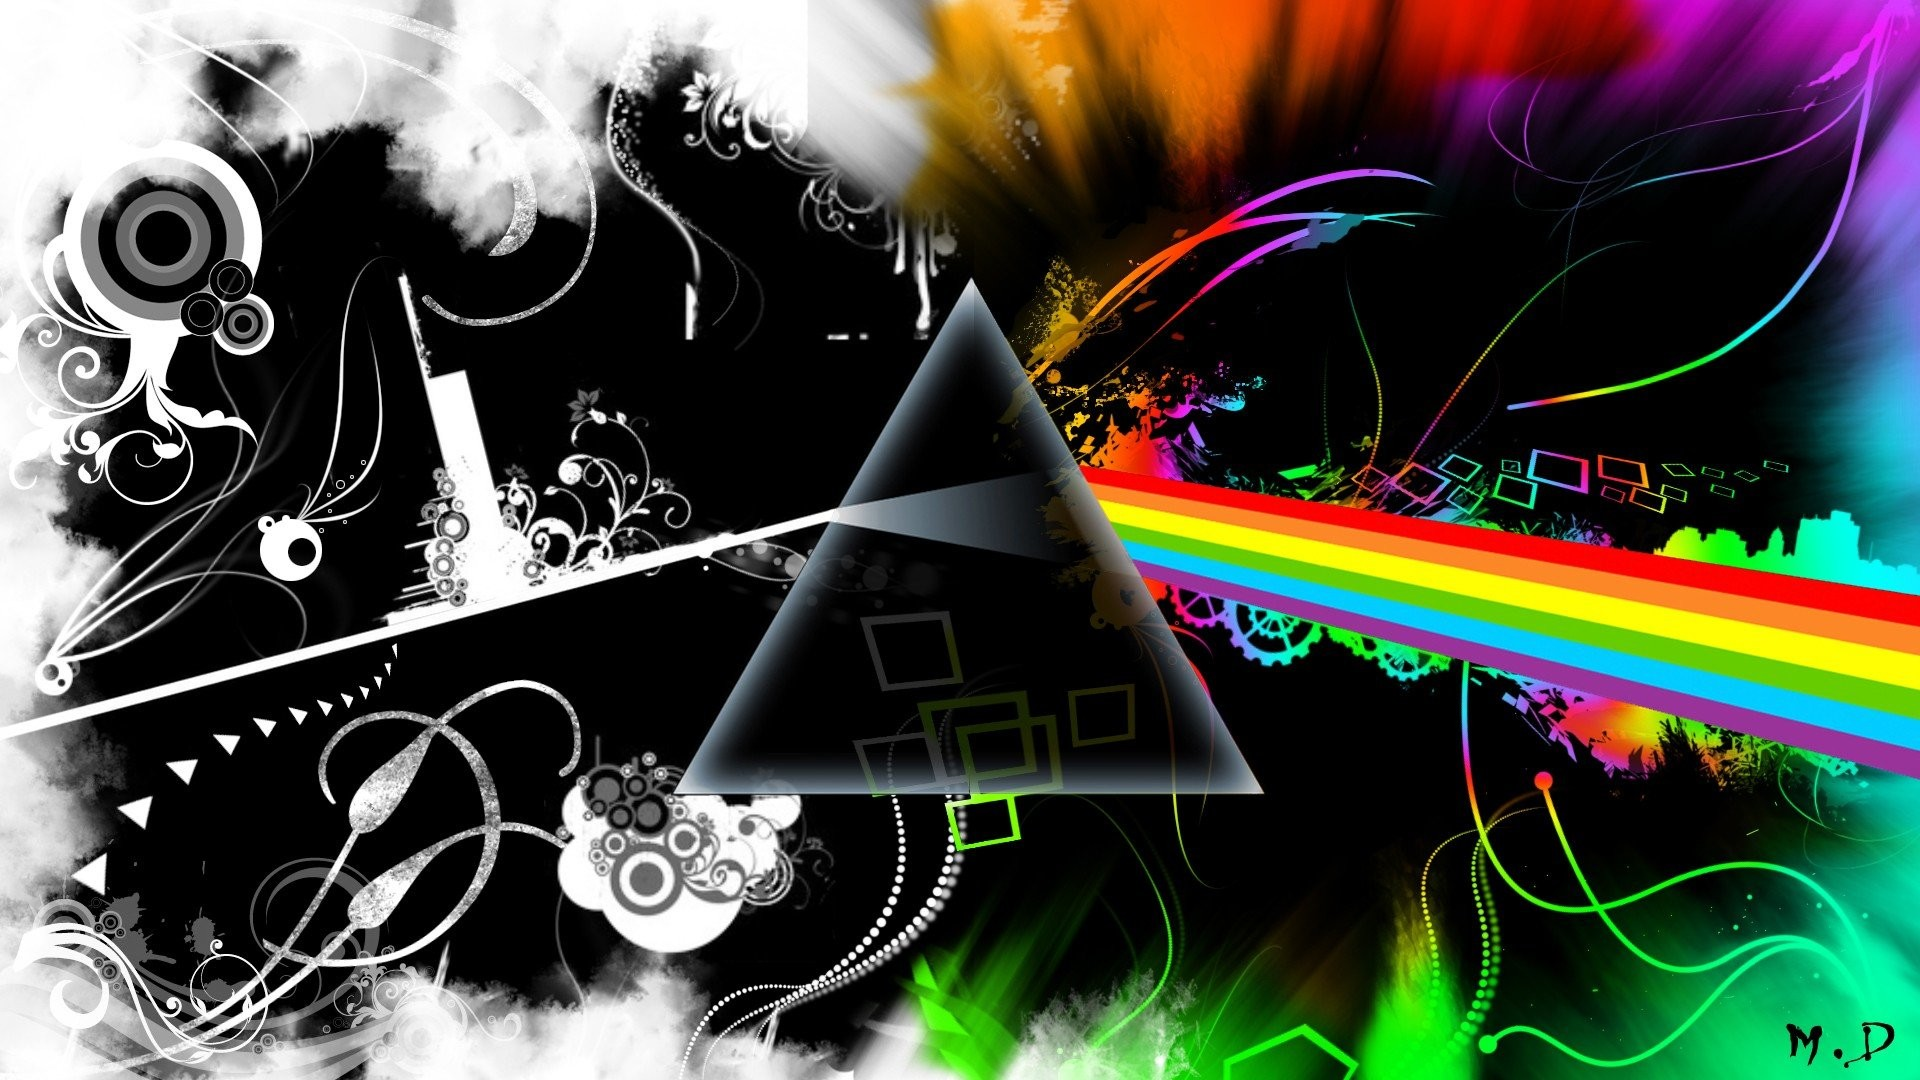 980030-large-rock-music-wallpapers-1920x1080-large-resolution.jpg